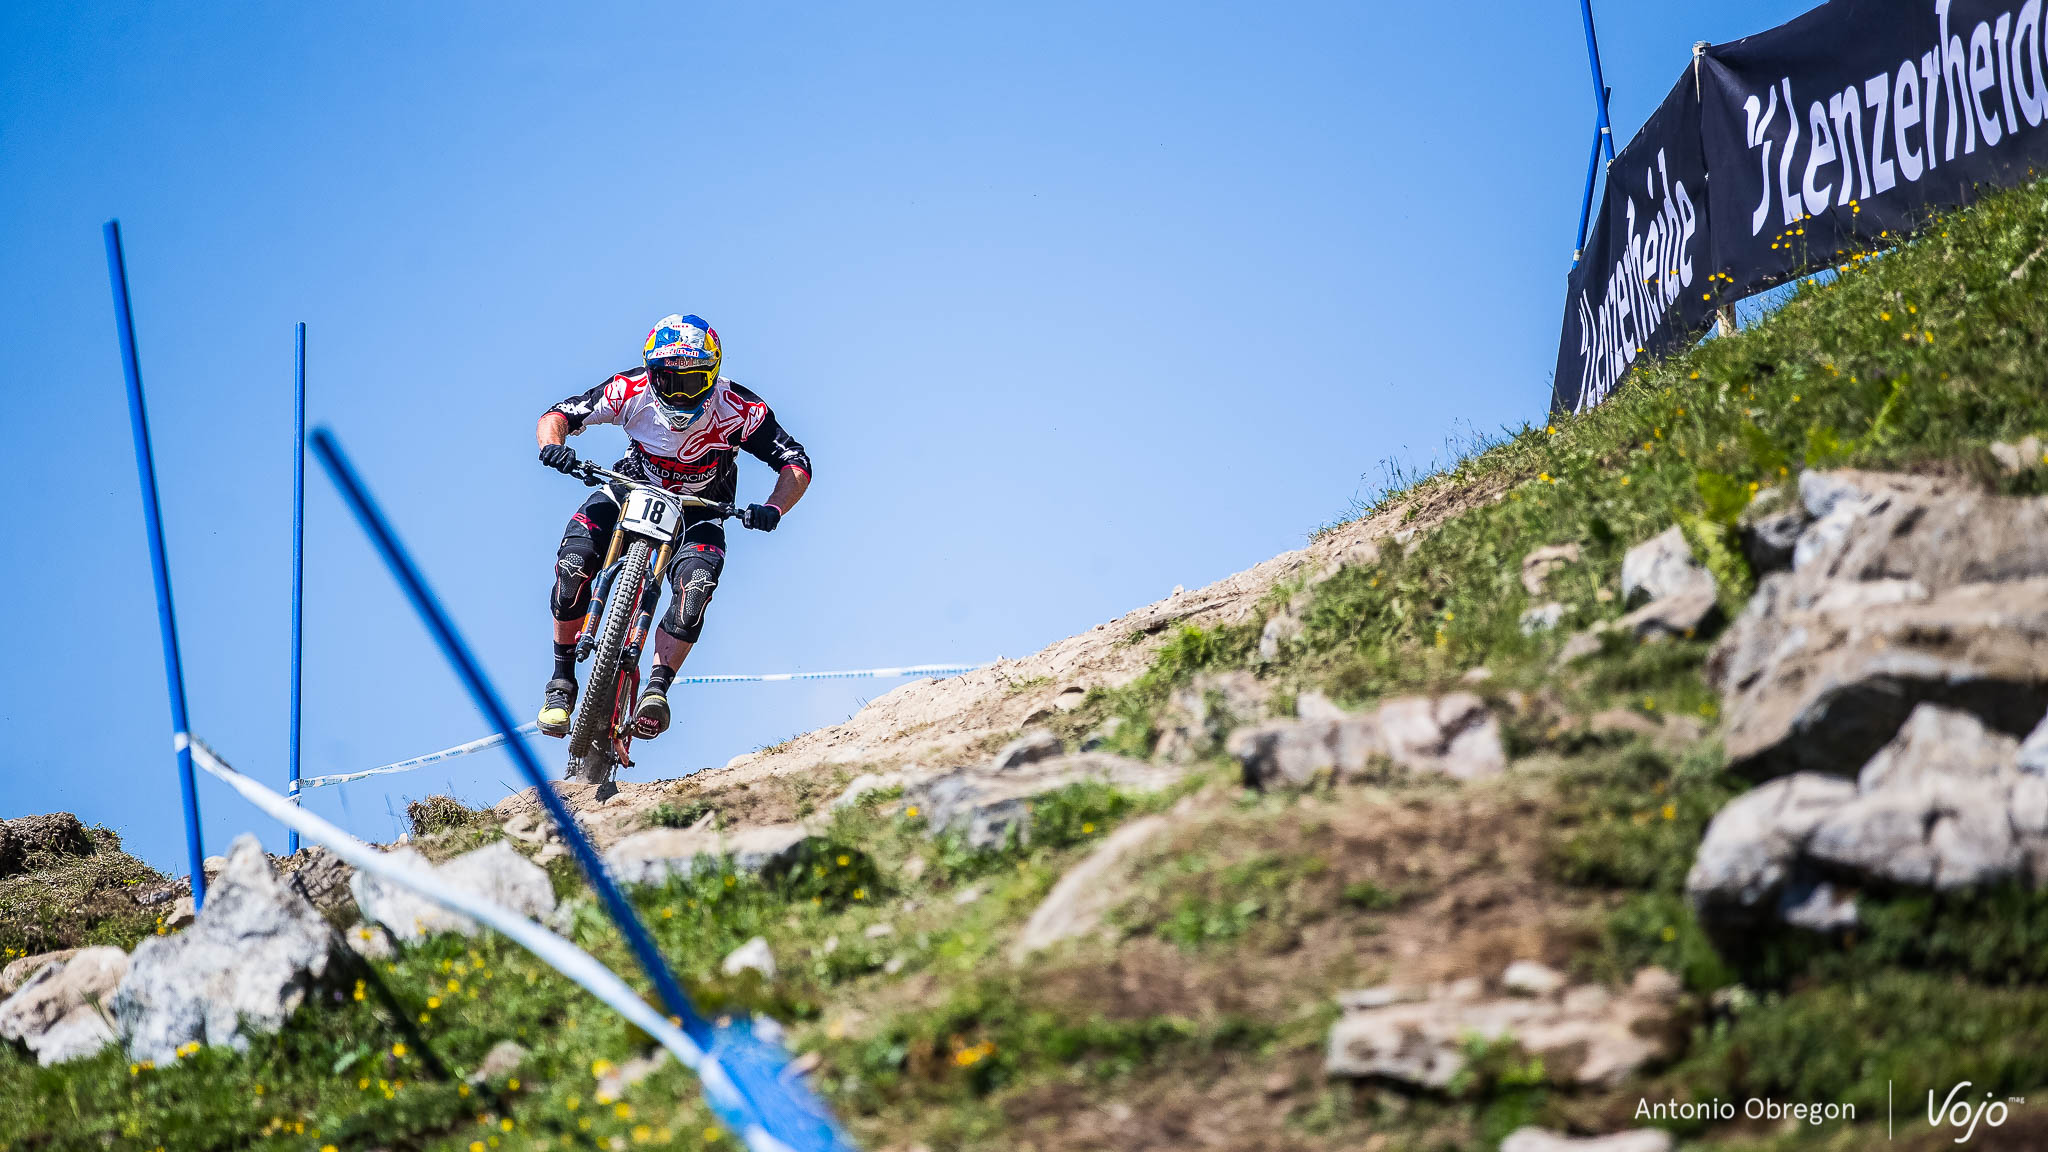 Lenzerheide_UCI_World_Cup_DH_2015_final_Porfoli_Elite_Copyright_Antonio_Obregon_VojoMag-17